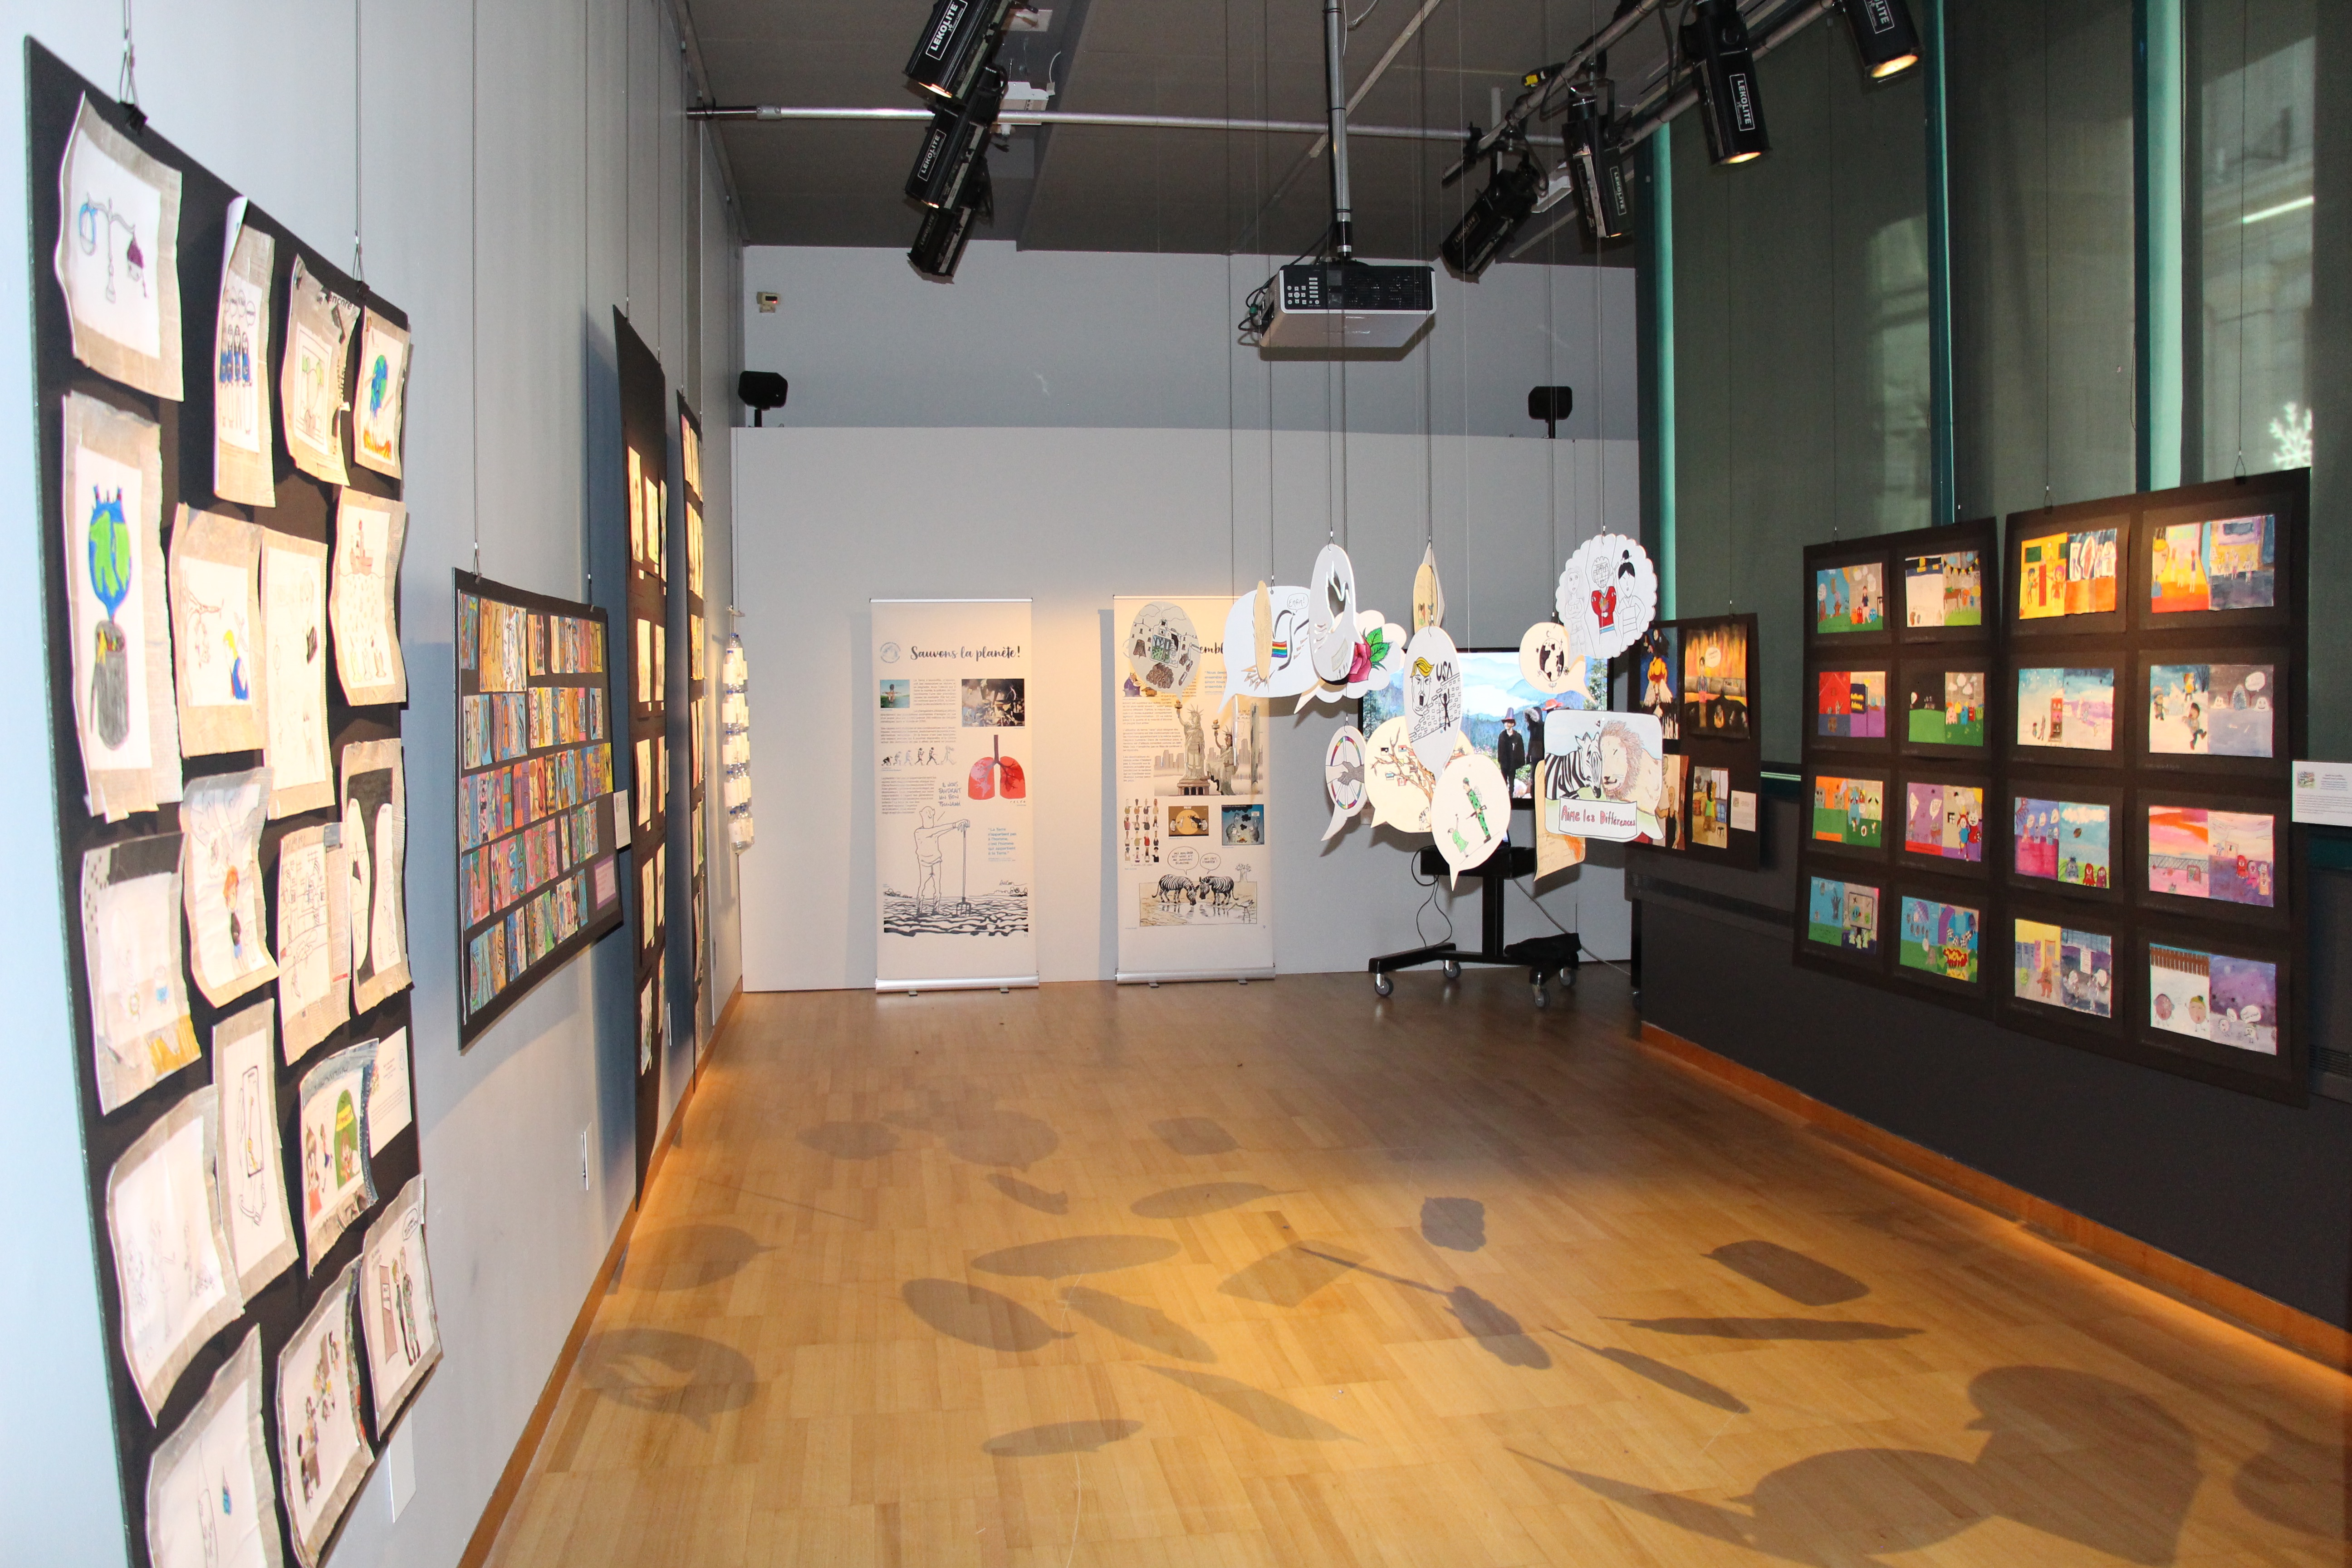 View of the student exhibition